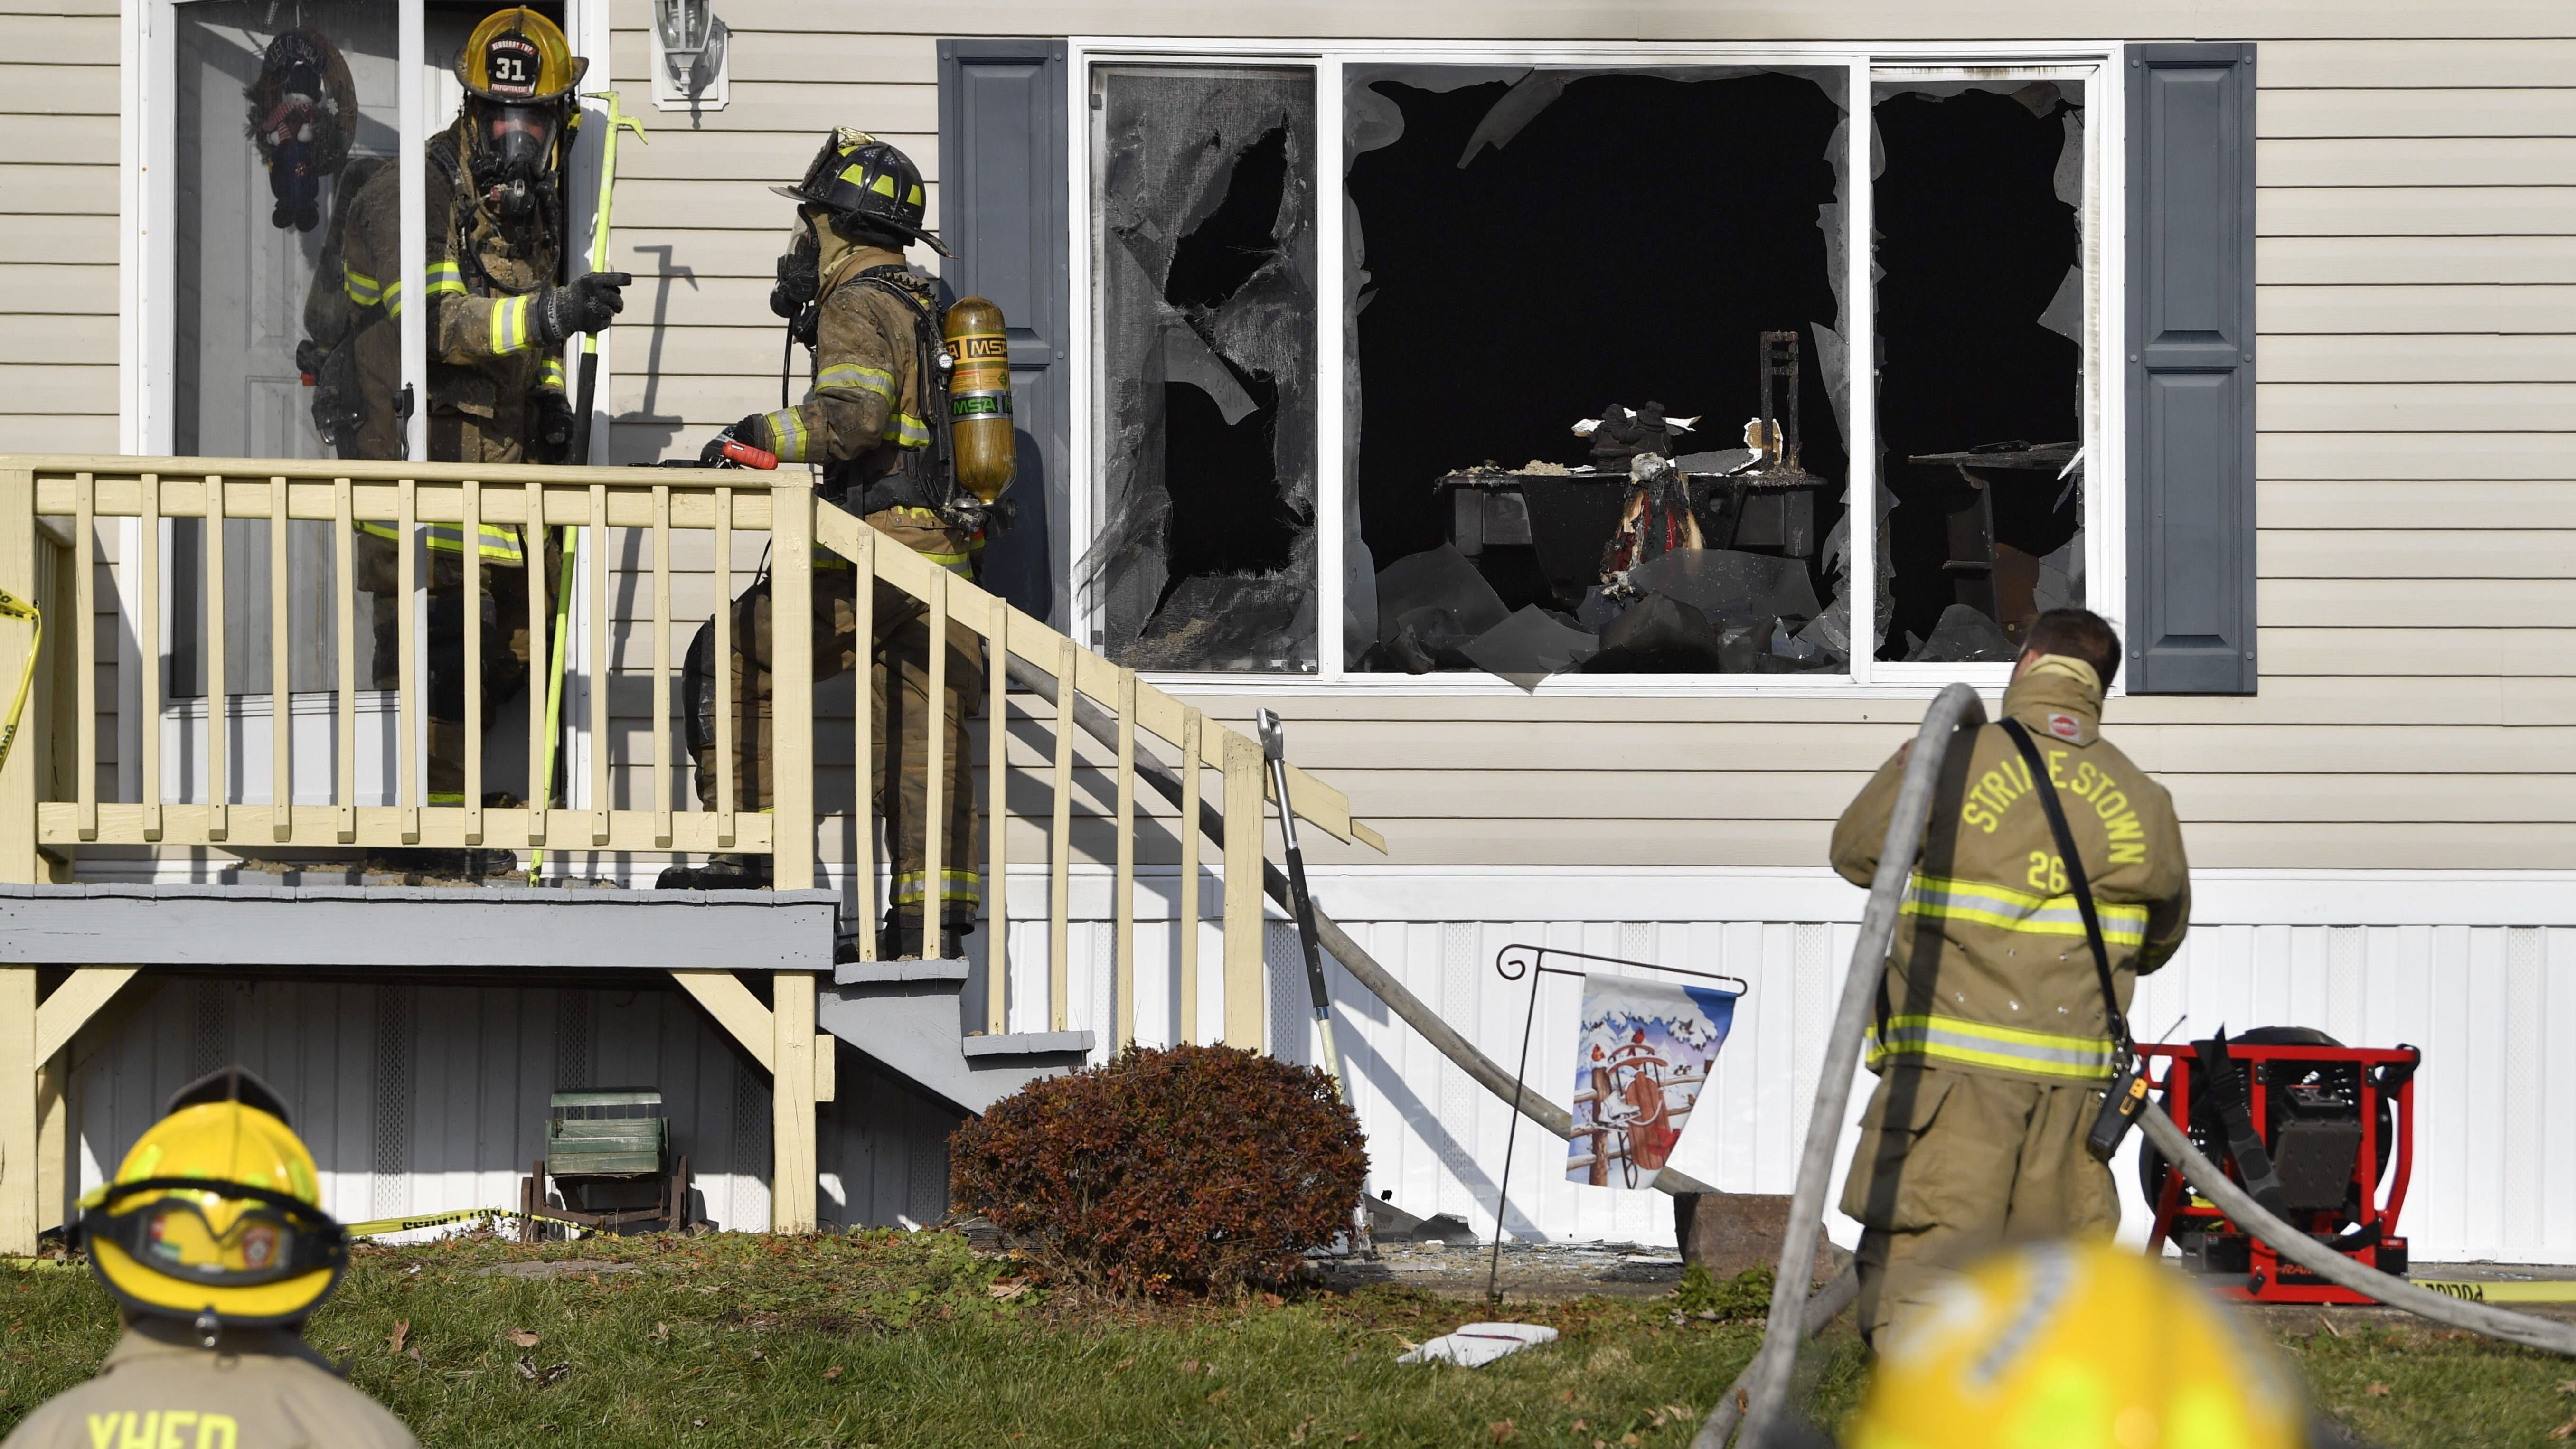 Man suspected of igniting Newberry Township trailer fire remains on the loose, police say